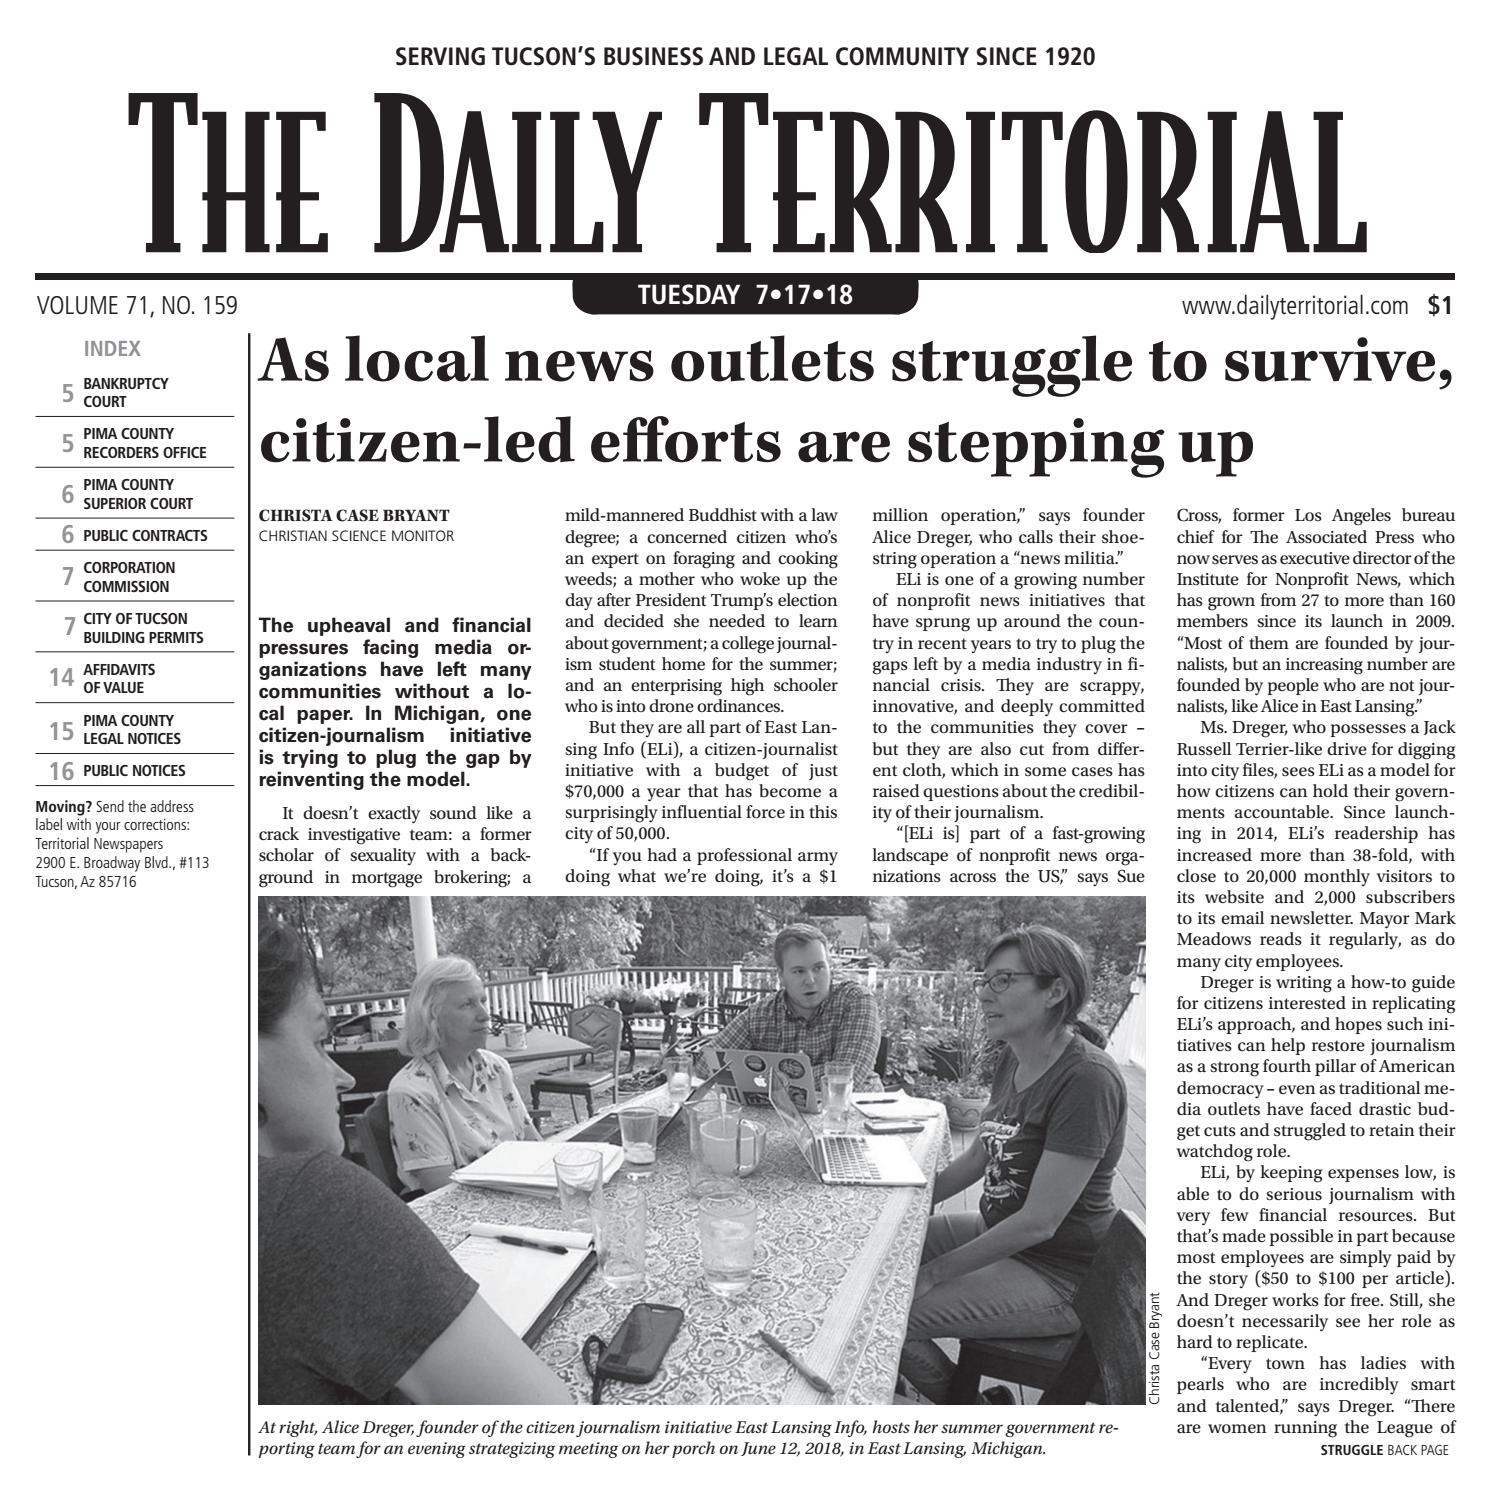 The Daily Territorial 071718